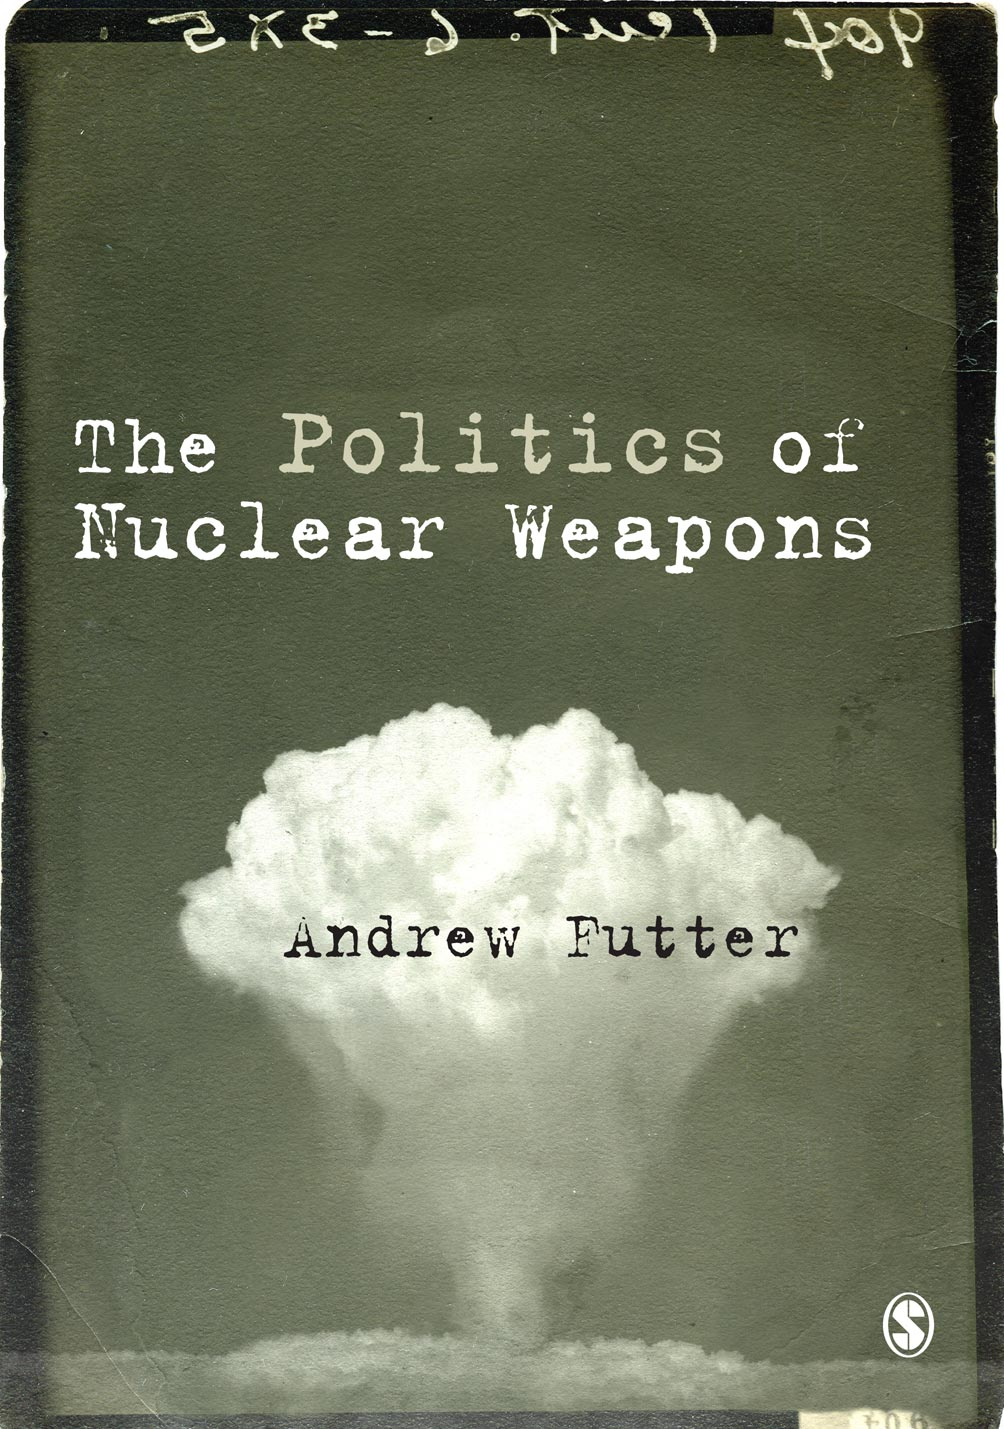 an introduction to the production of nuclear weapons Many world leaders claim that nuclear weapons are vital shields for the planet they claim that nucl the world does not need nuclear weapons may 22, 2012.